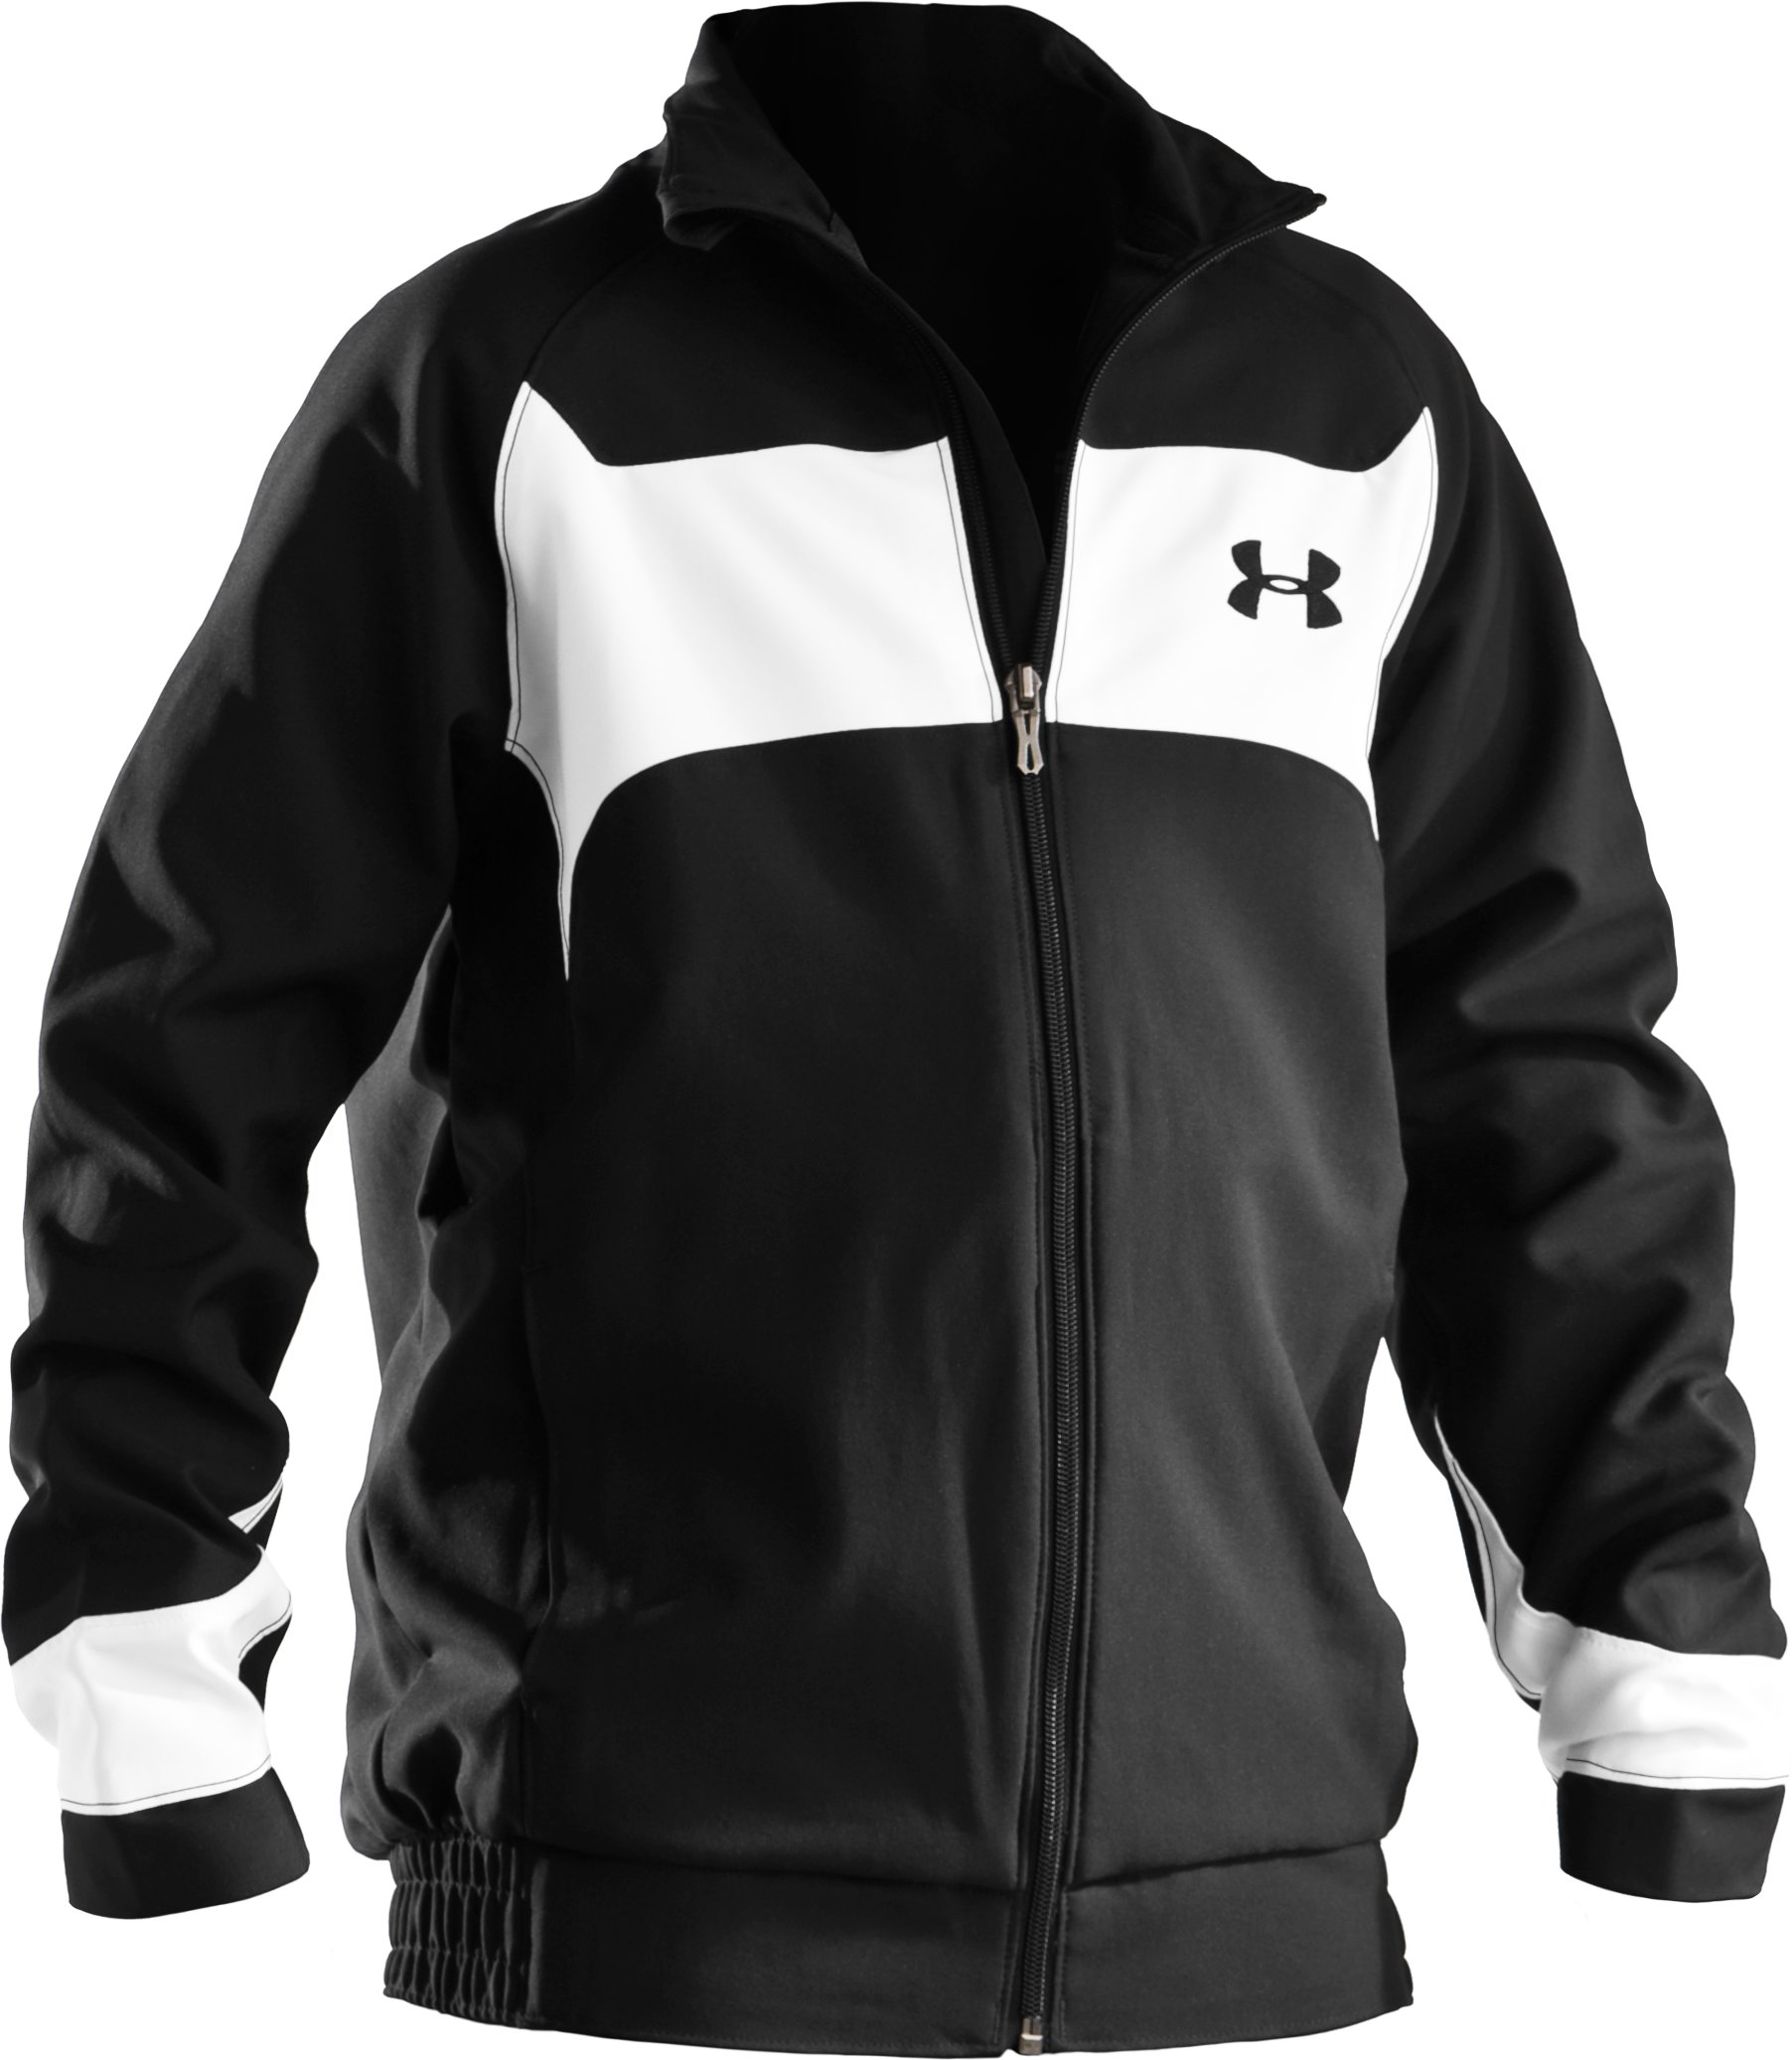 Boys' Ignition Woven Warm-Up Jacket, Black